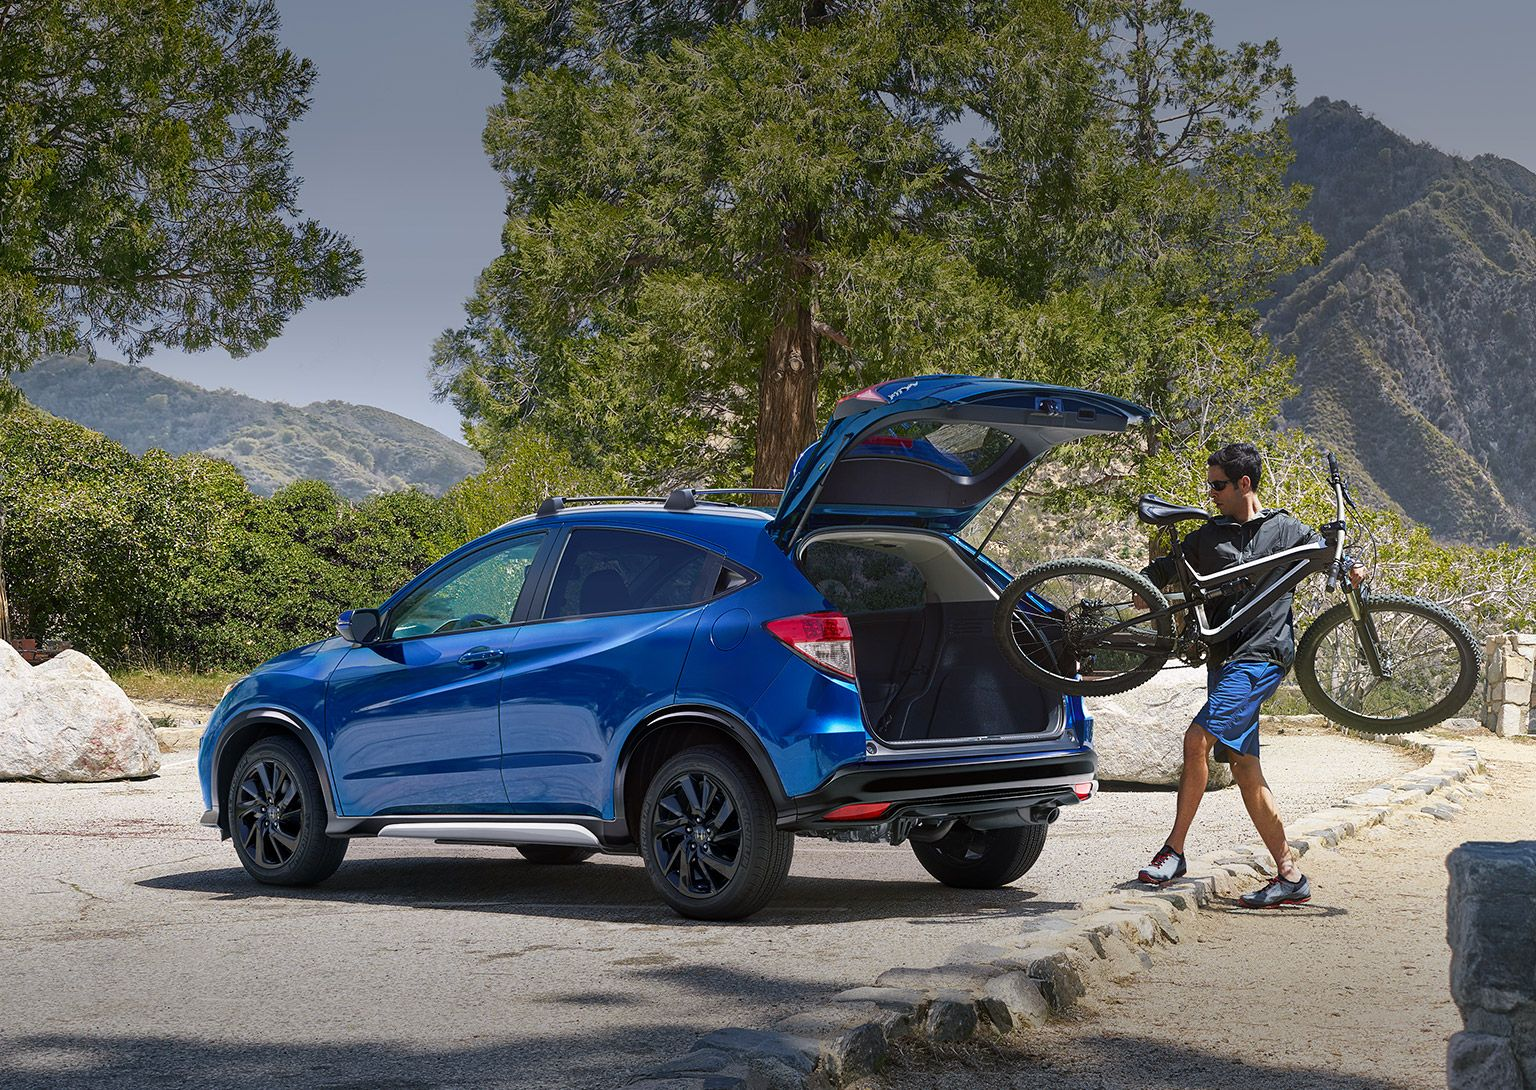 How much can the 2022 Honda HR-V tow?